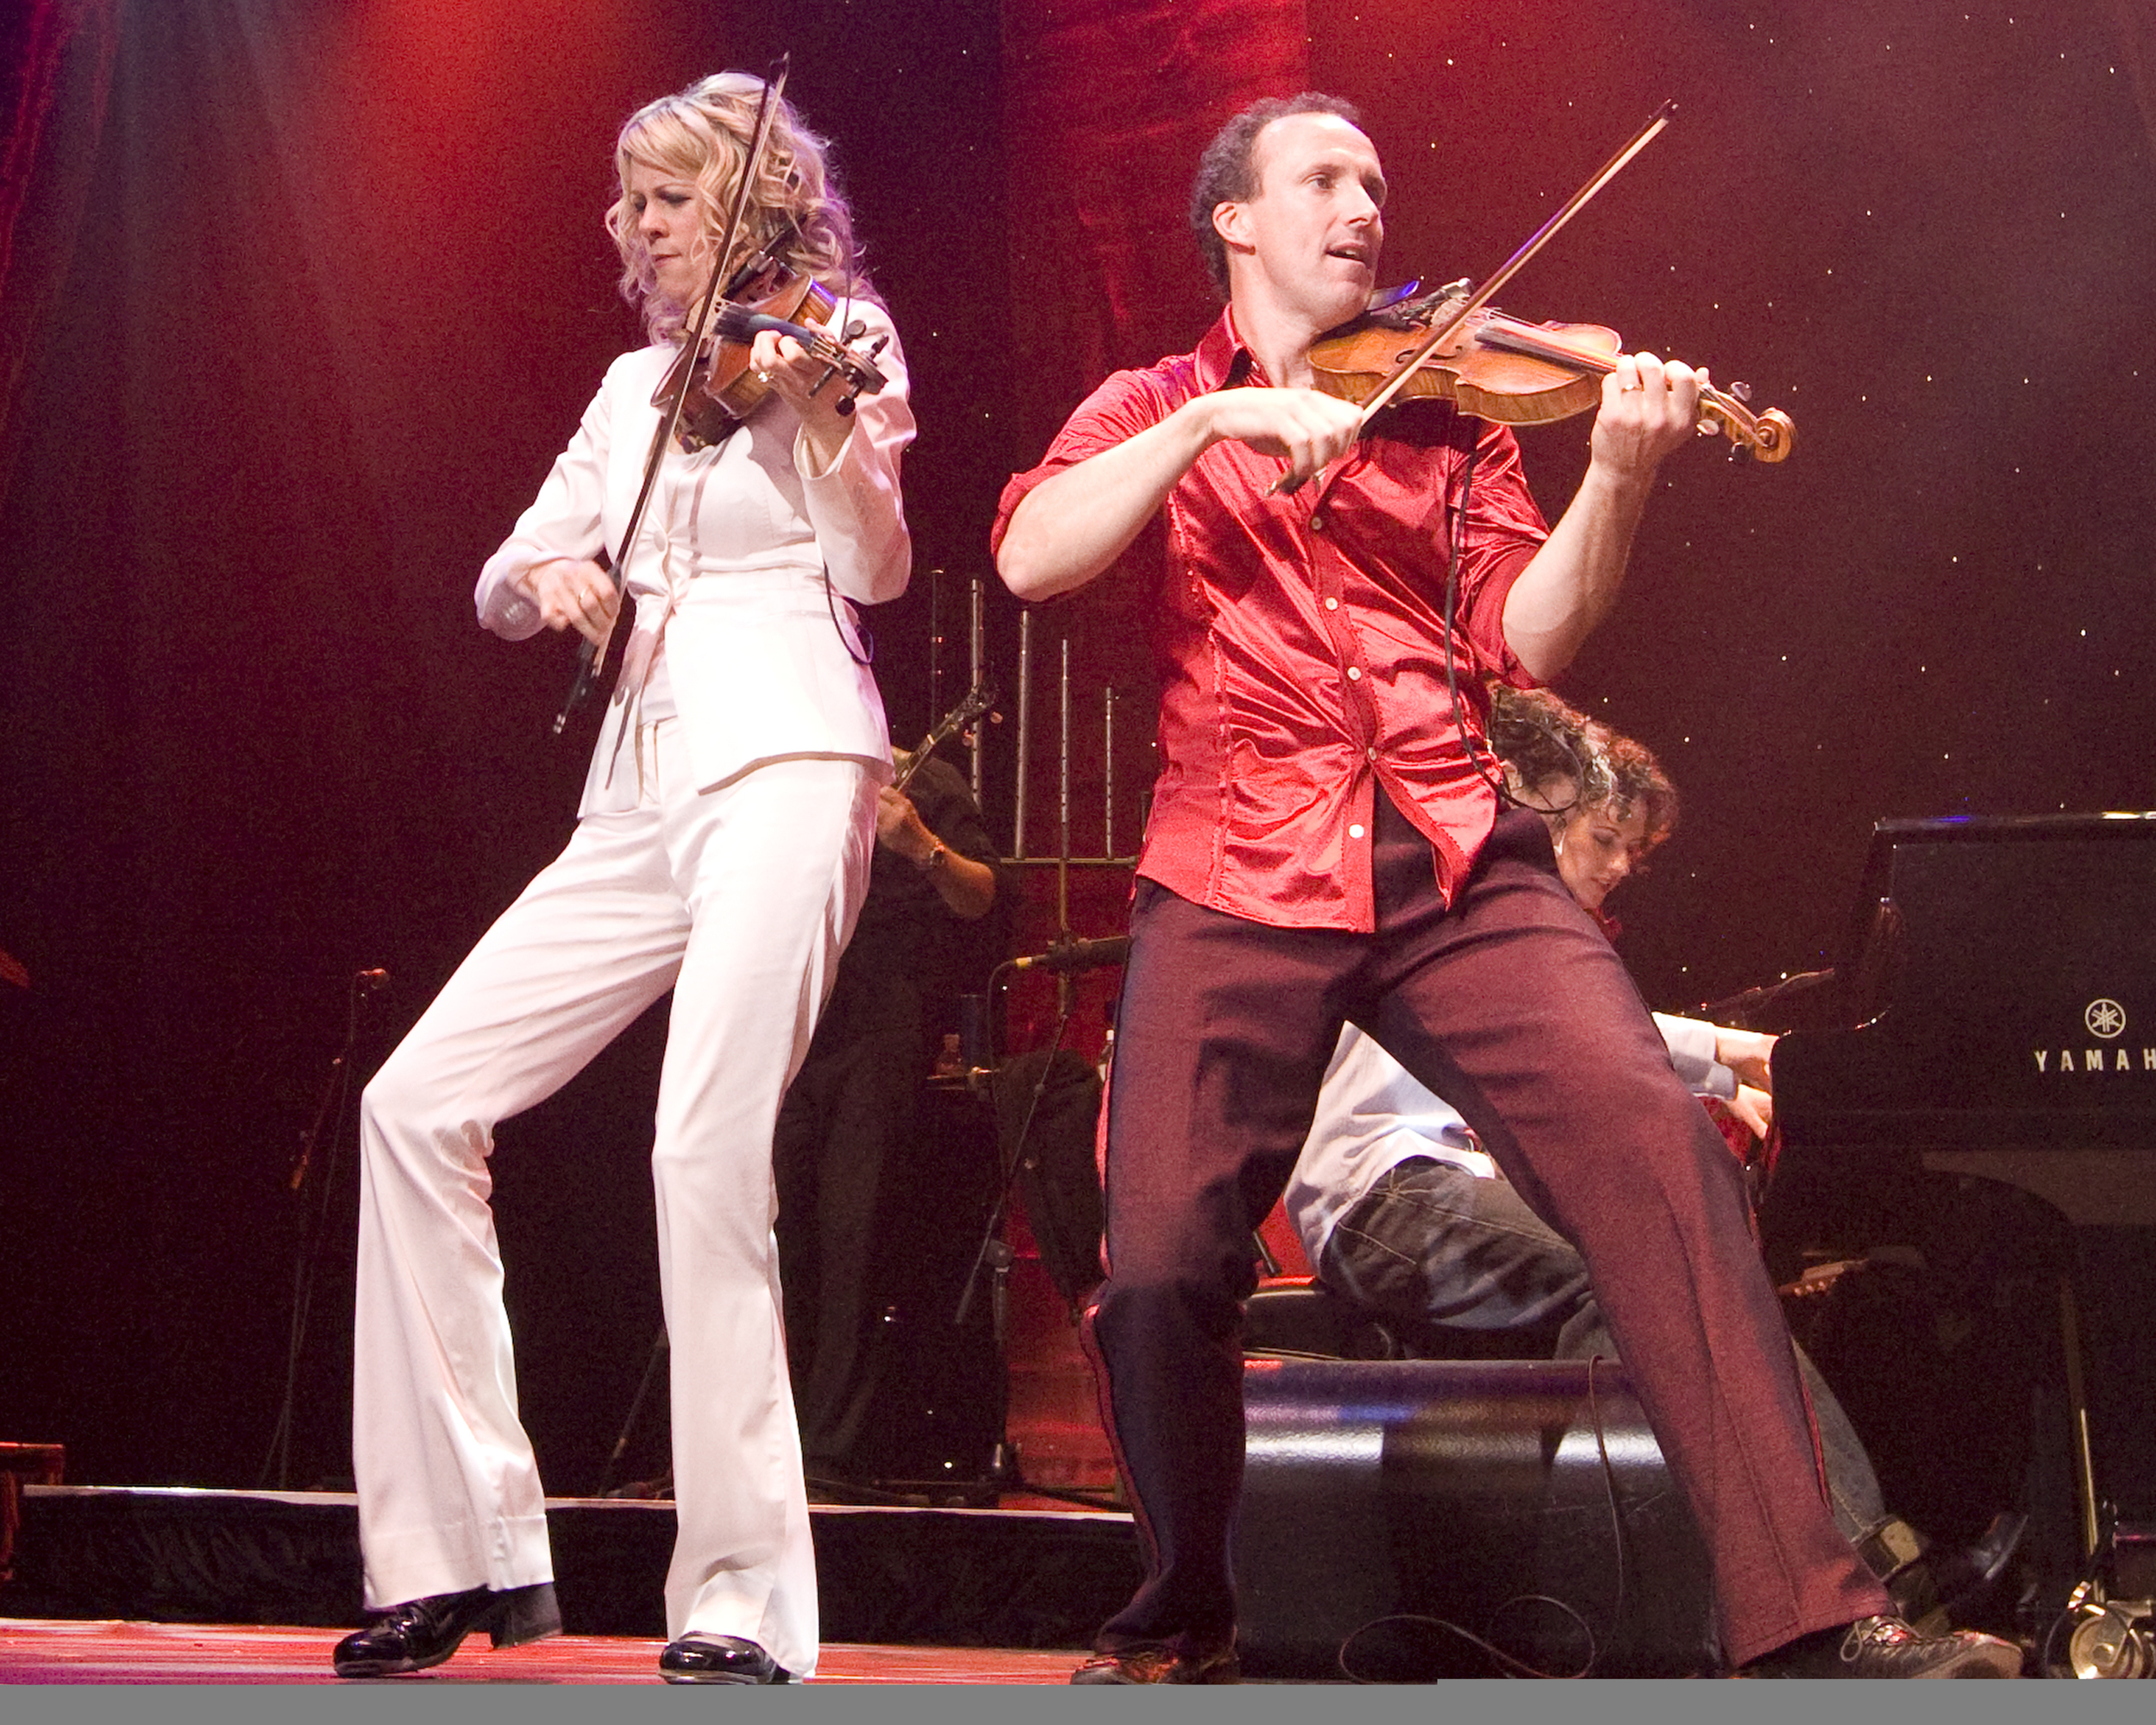 Donnell Leahy & Natalie MacMaster - June 19, 2009